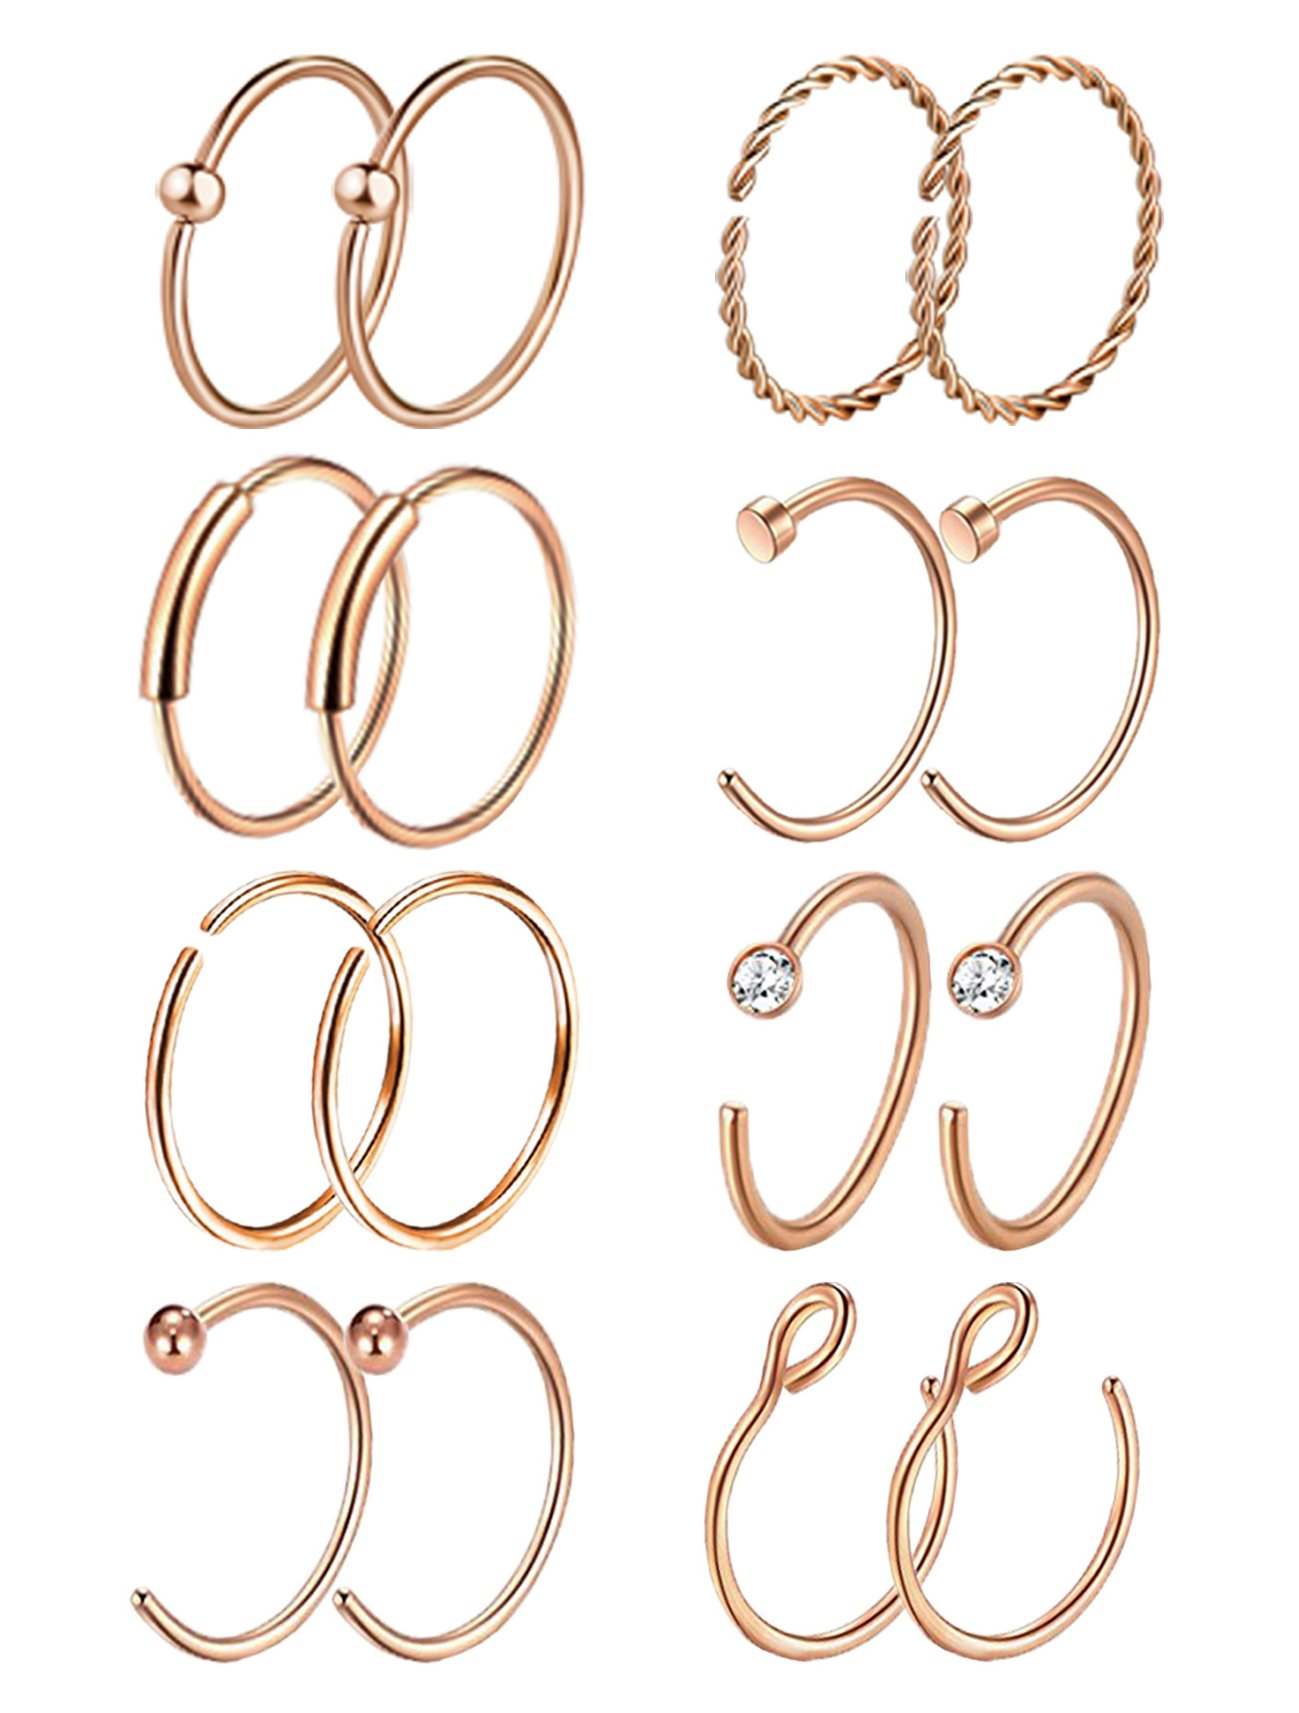 Masedy 16Pcs 20G 316L Stainless Steel Nose Rings Hoop Tragus Cartilage Helix Ring Lip Septum Piercing Rose Gold 8MM by Masedy